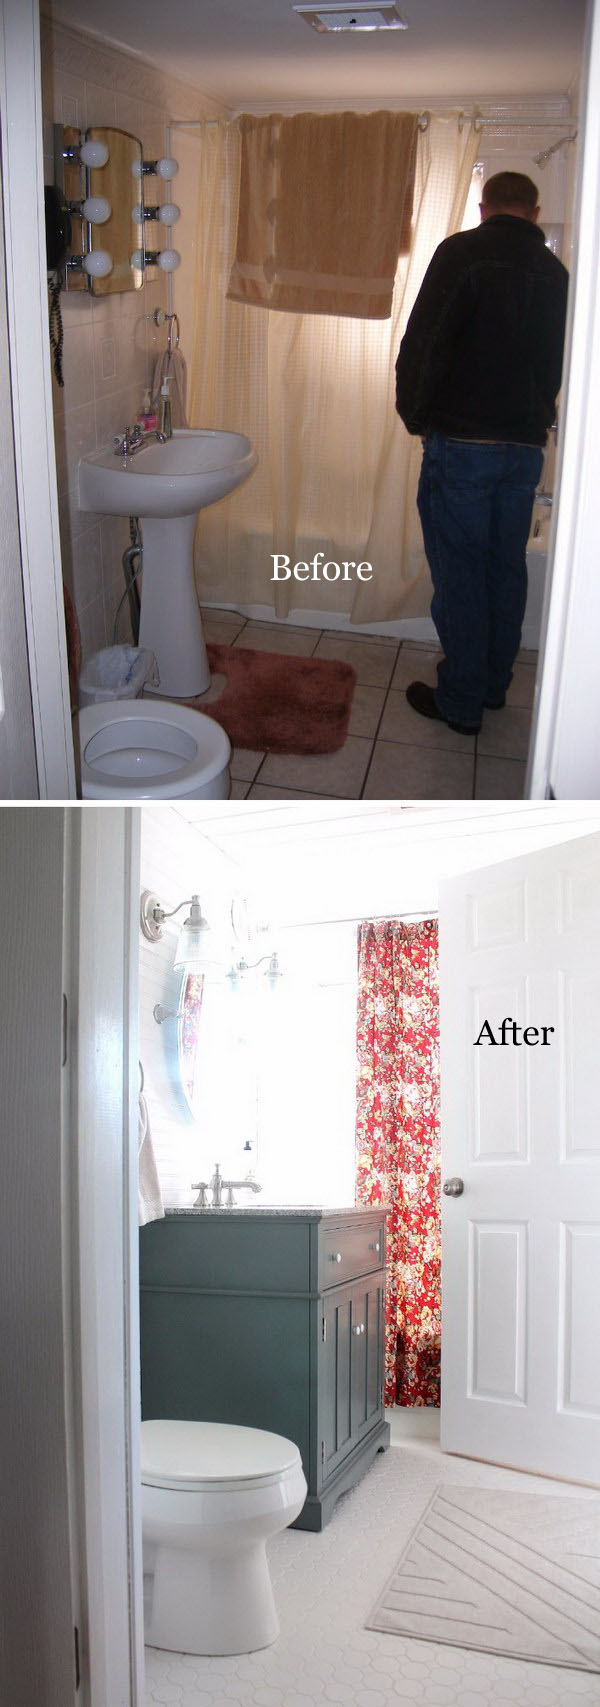 Downstairs Bathroom Remodel.